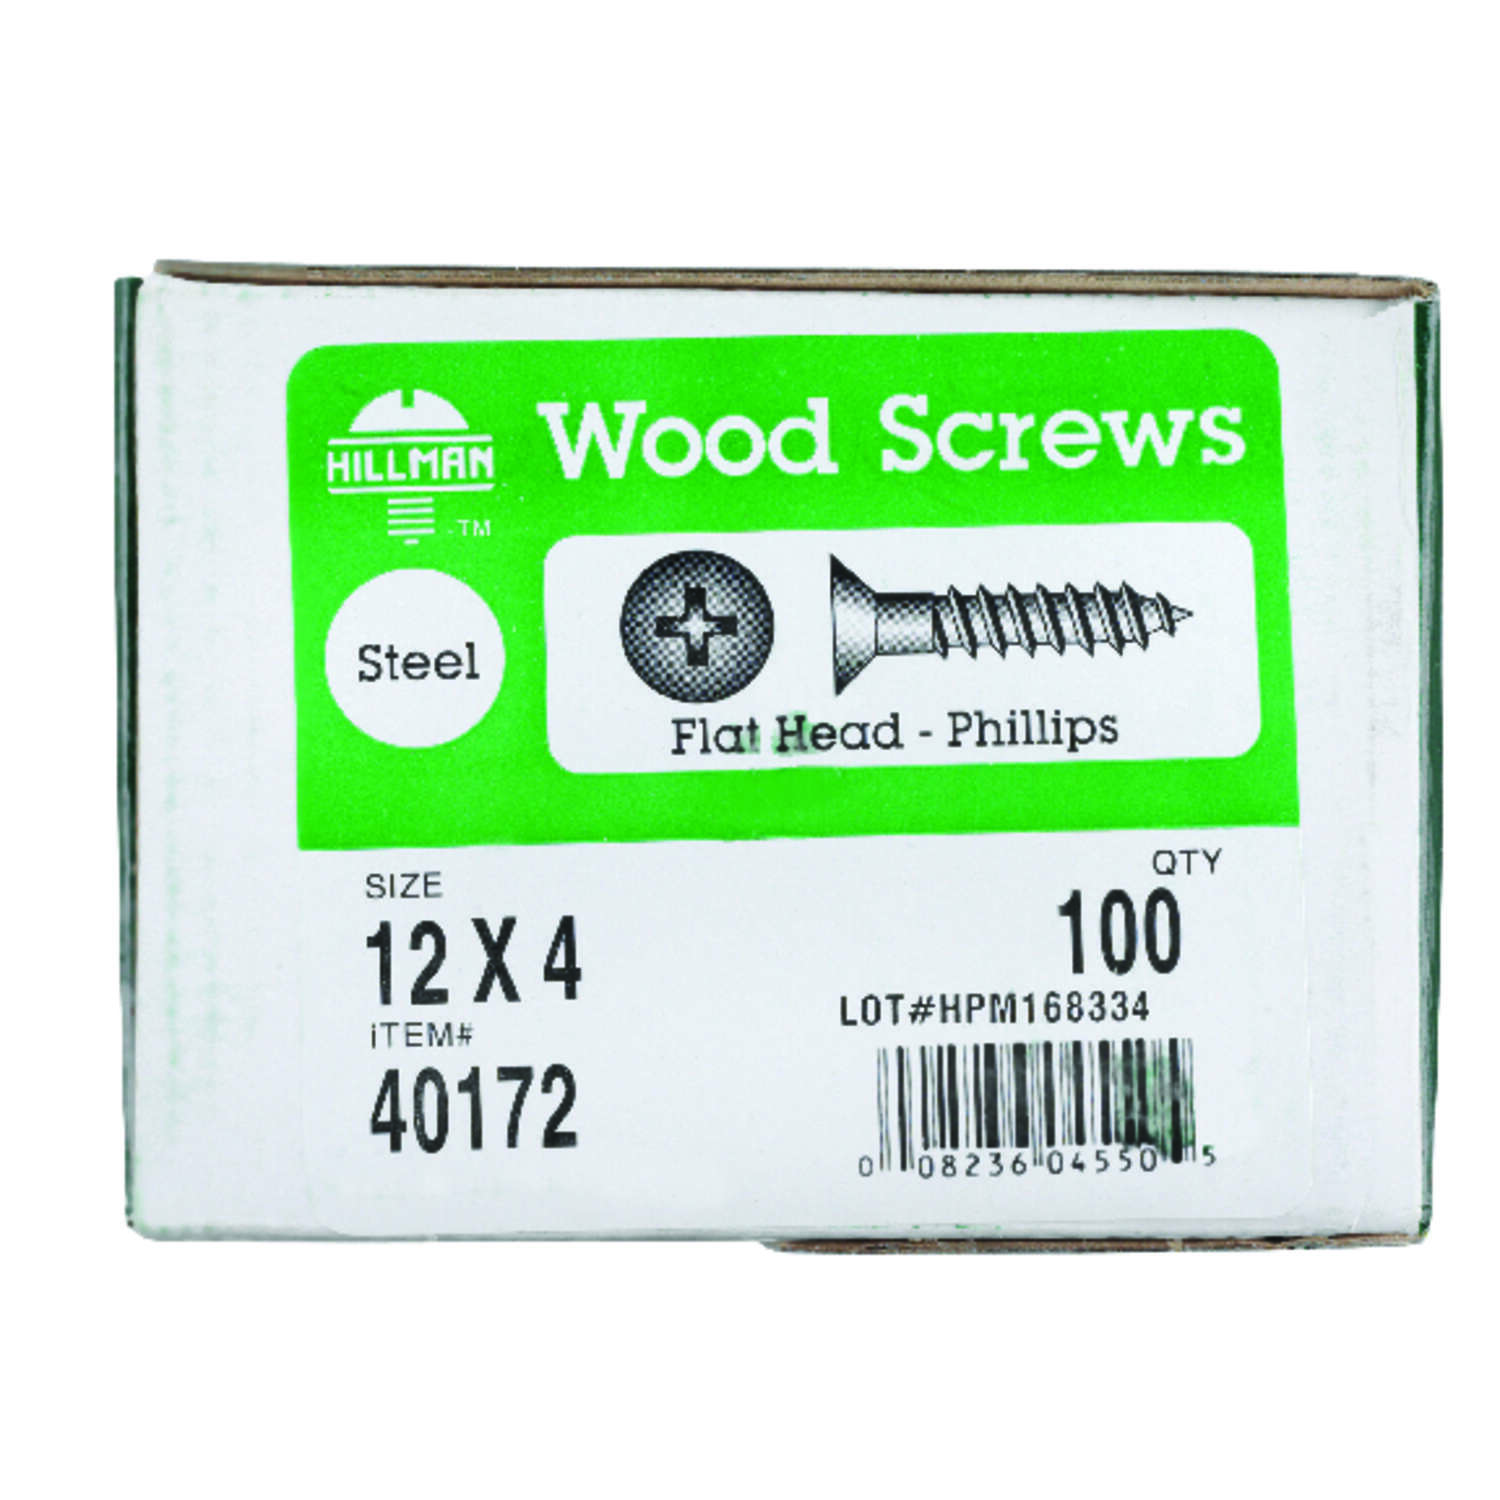 HILLMAN  No. 12   x 4 in. L Phillips  Flat  Zinc-Plated  Steel  Wood Screws  100 pk